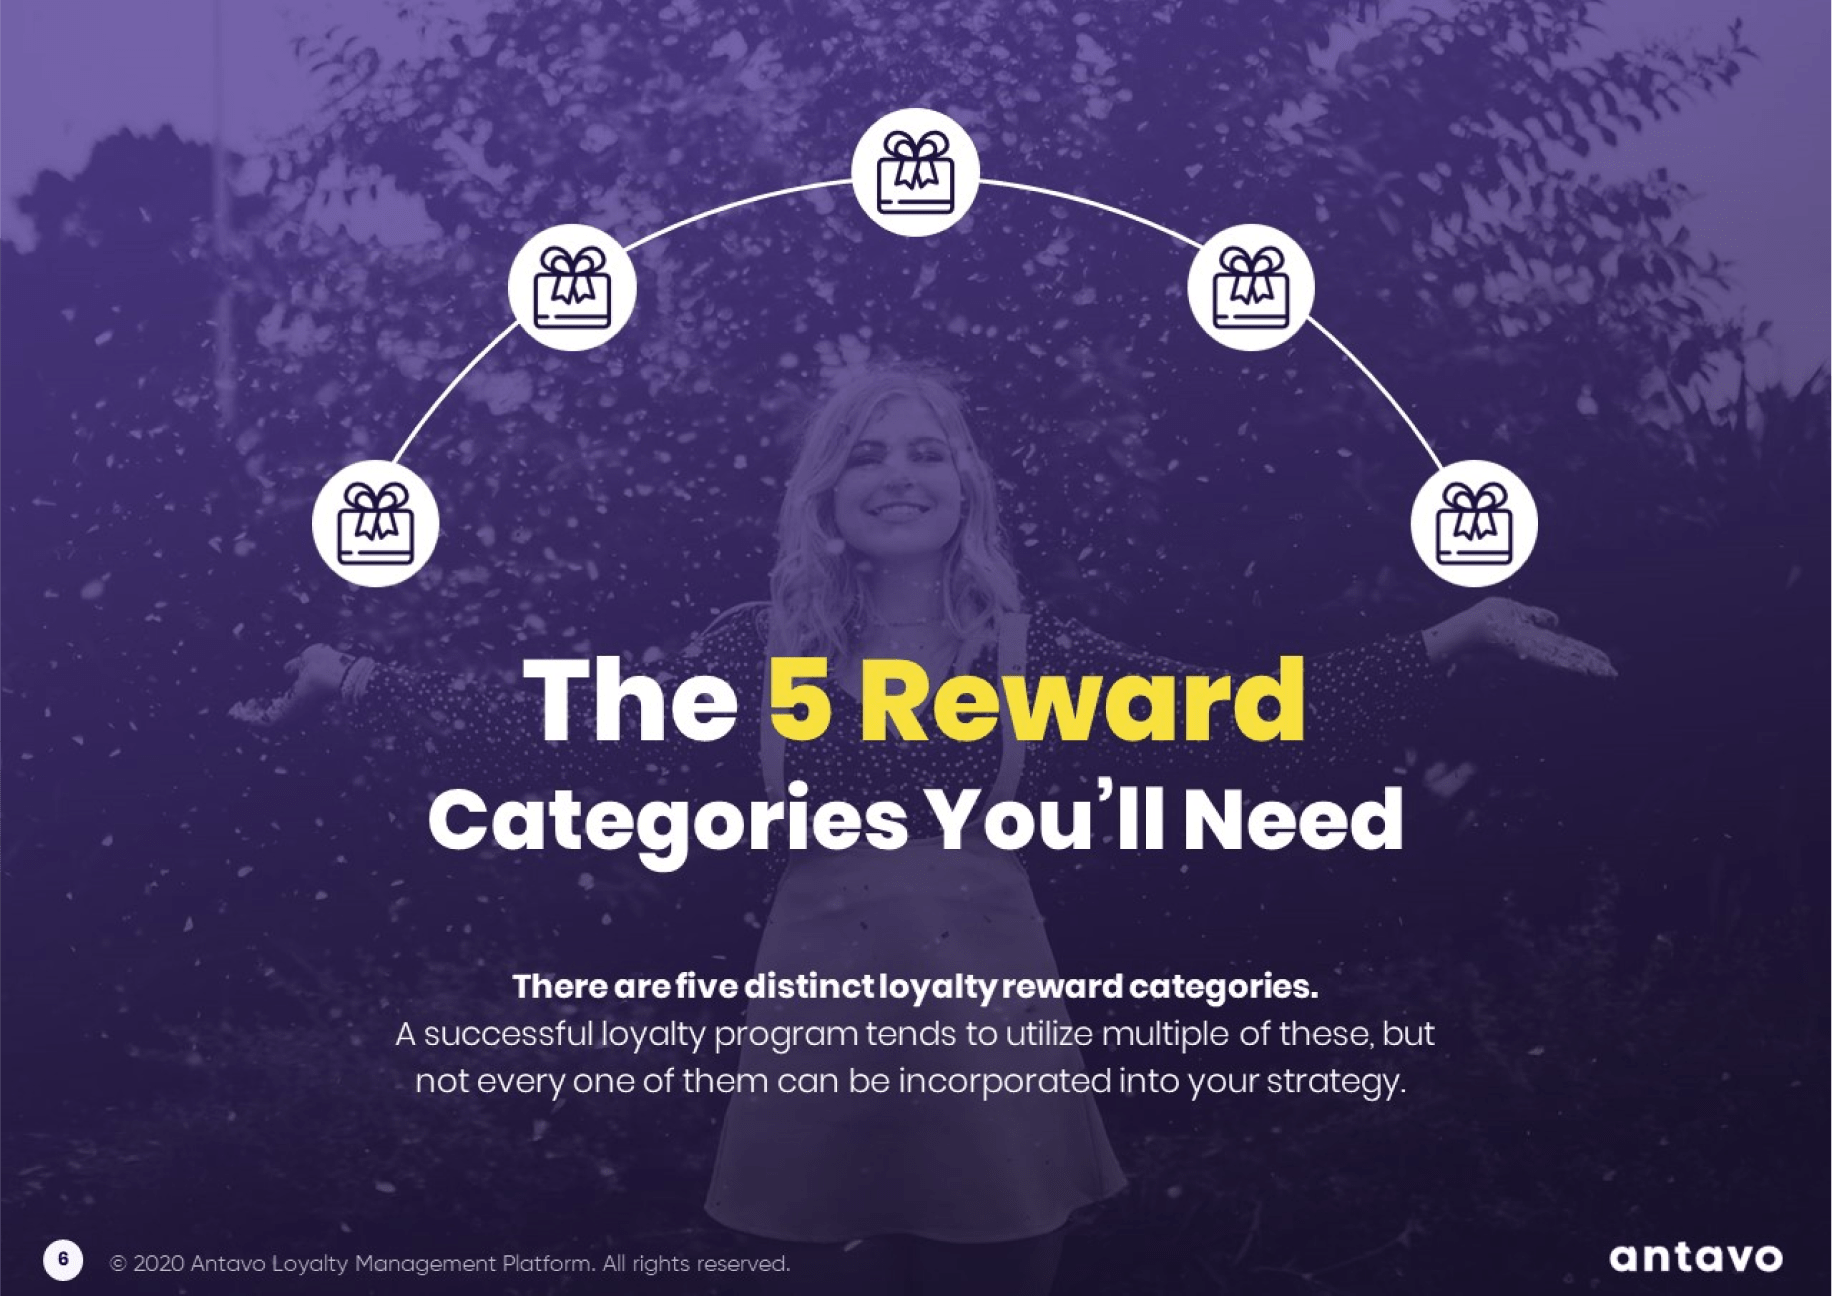 Antavo's Ebook: The Ultimate Guide to Loyalty Program Rewards - The 5 reward categories you'll need.